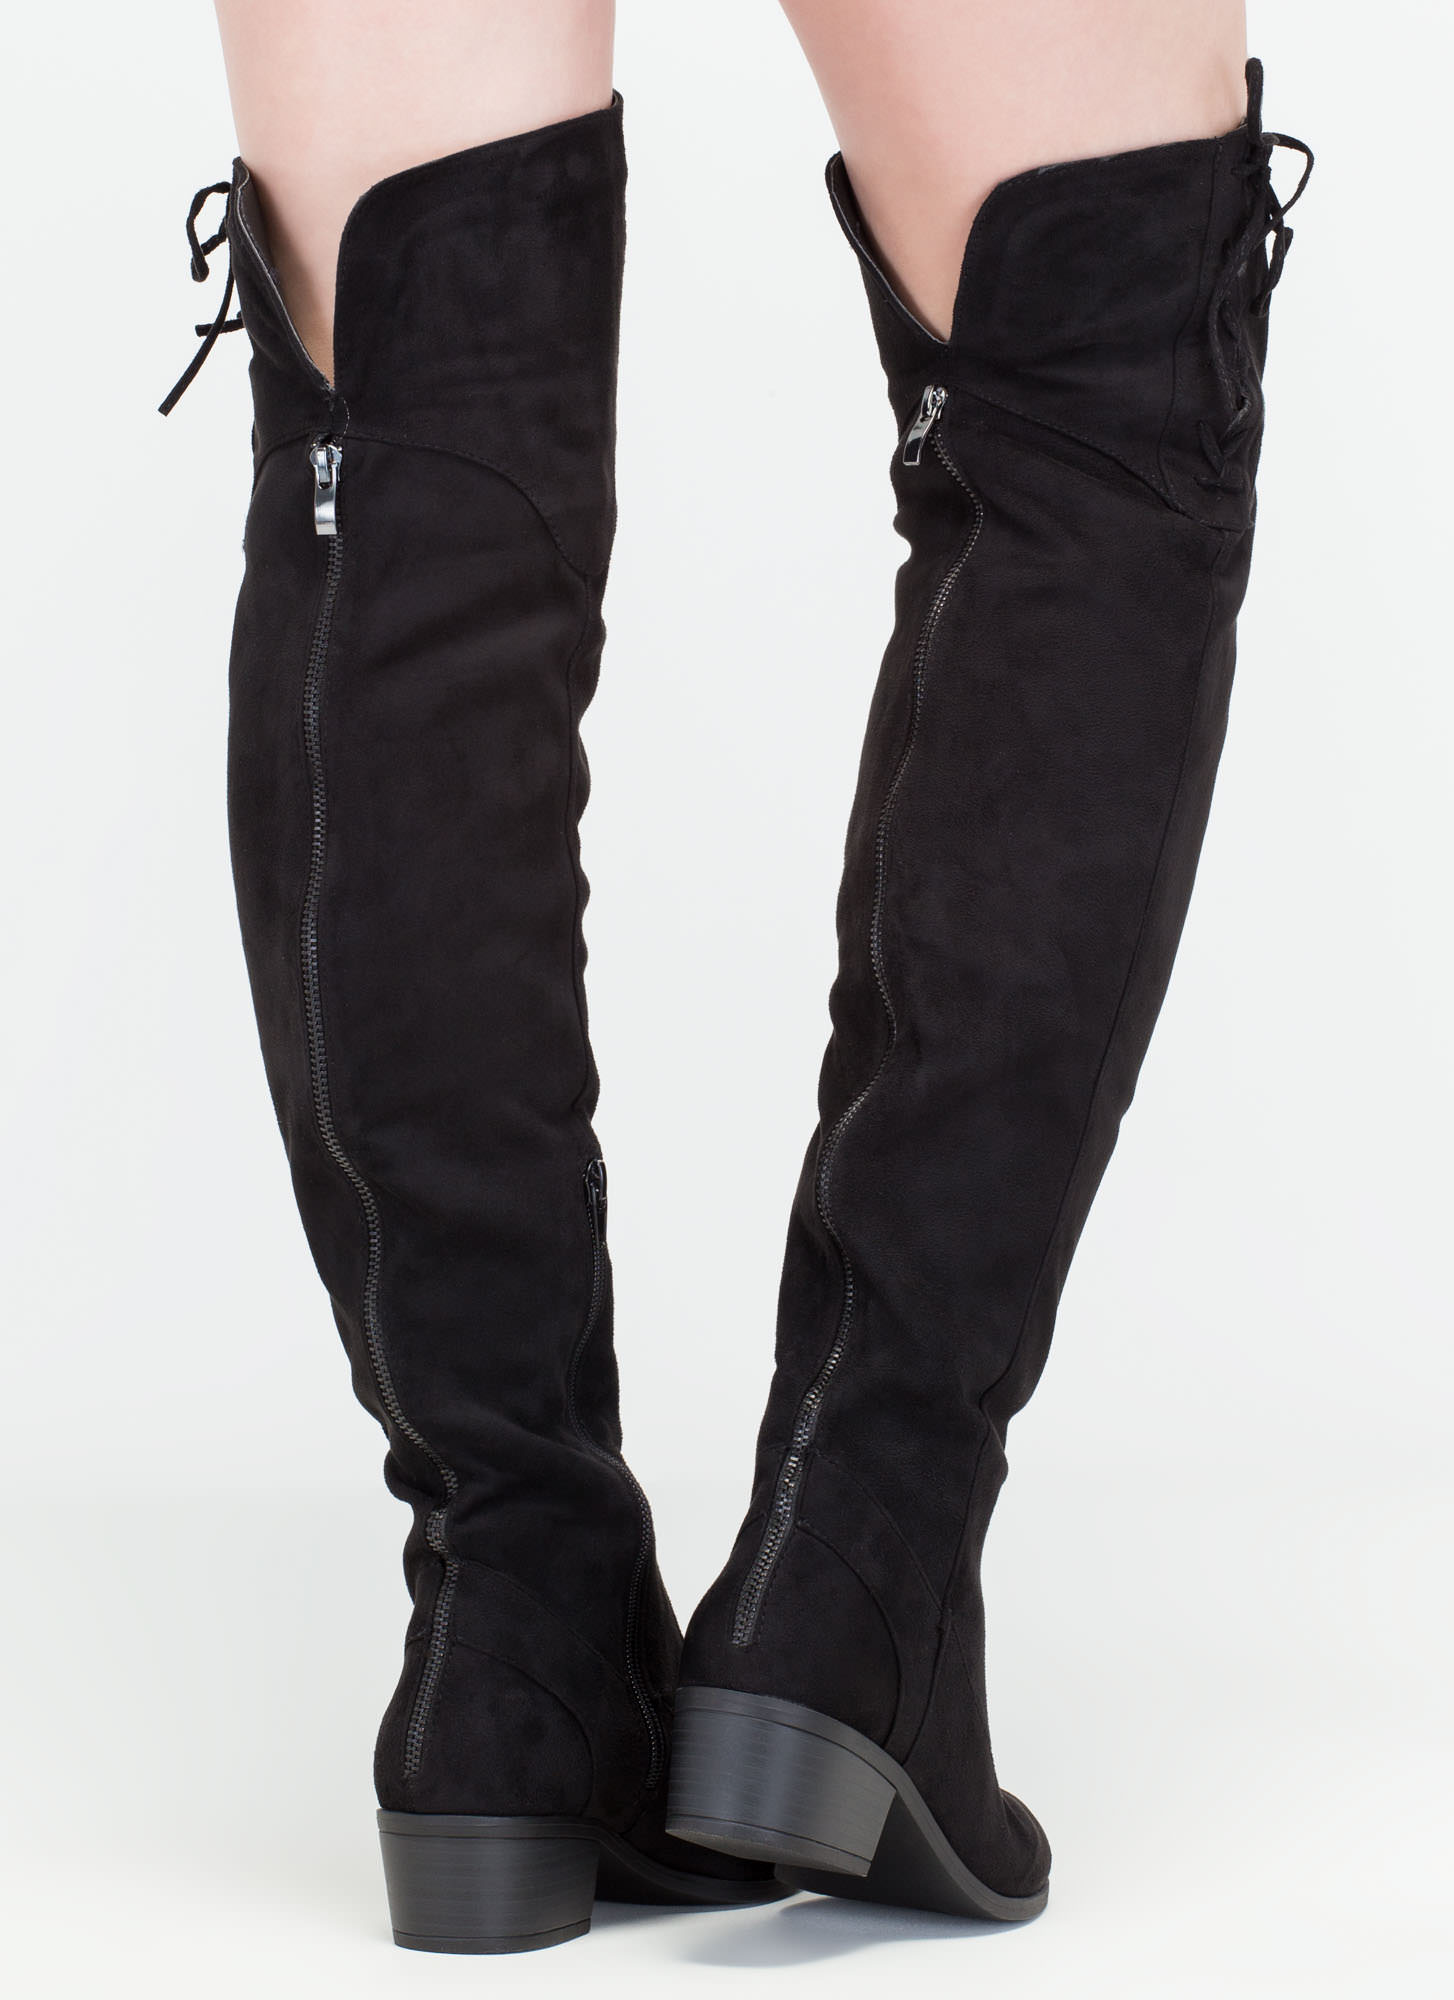 Top Style Laced-Up Over-The-Knee Boots BLACK